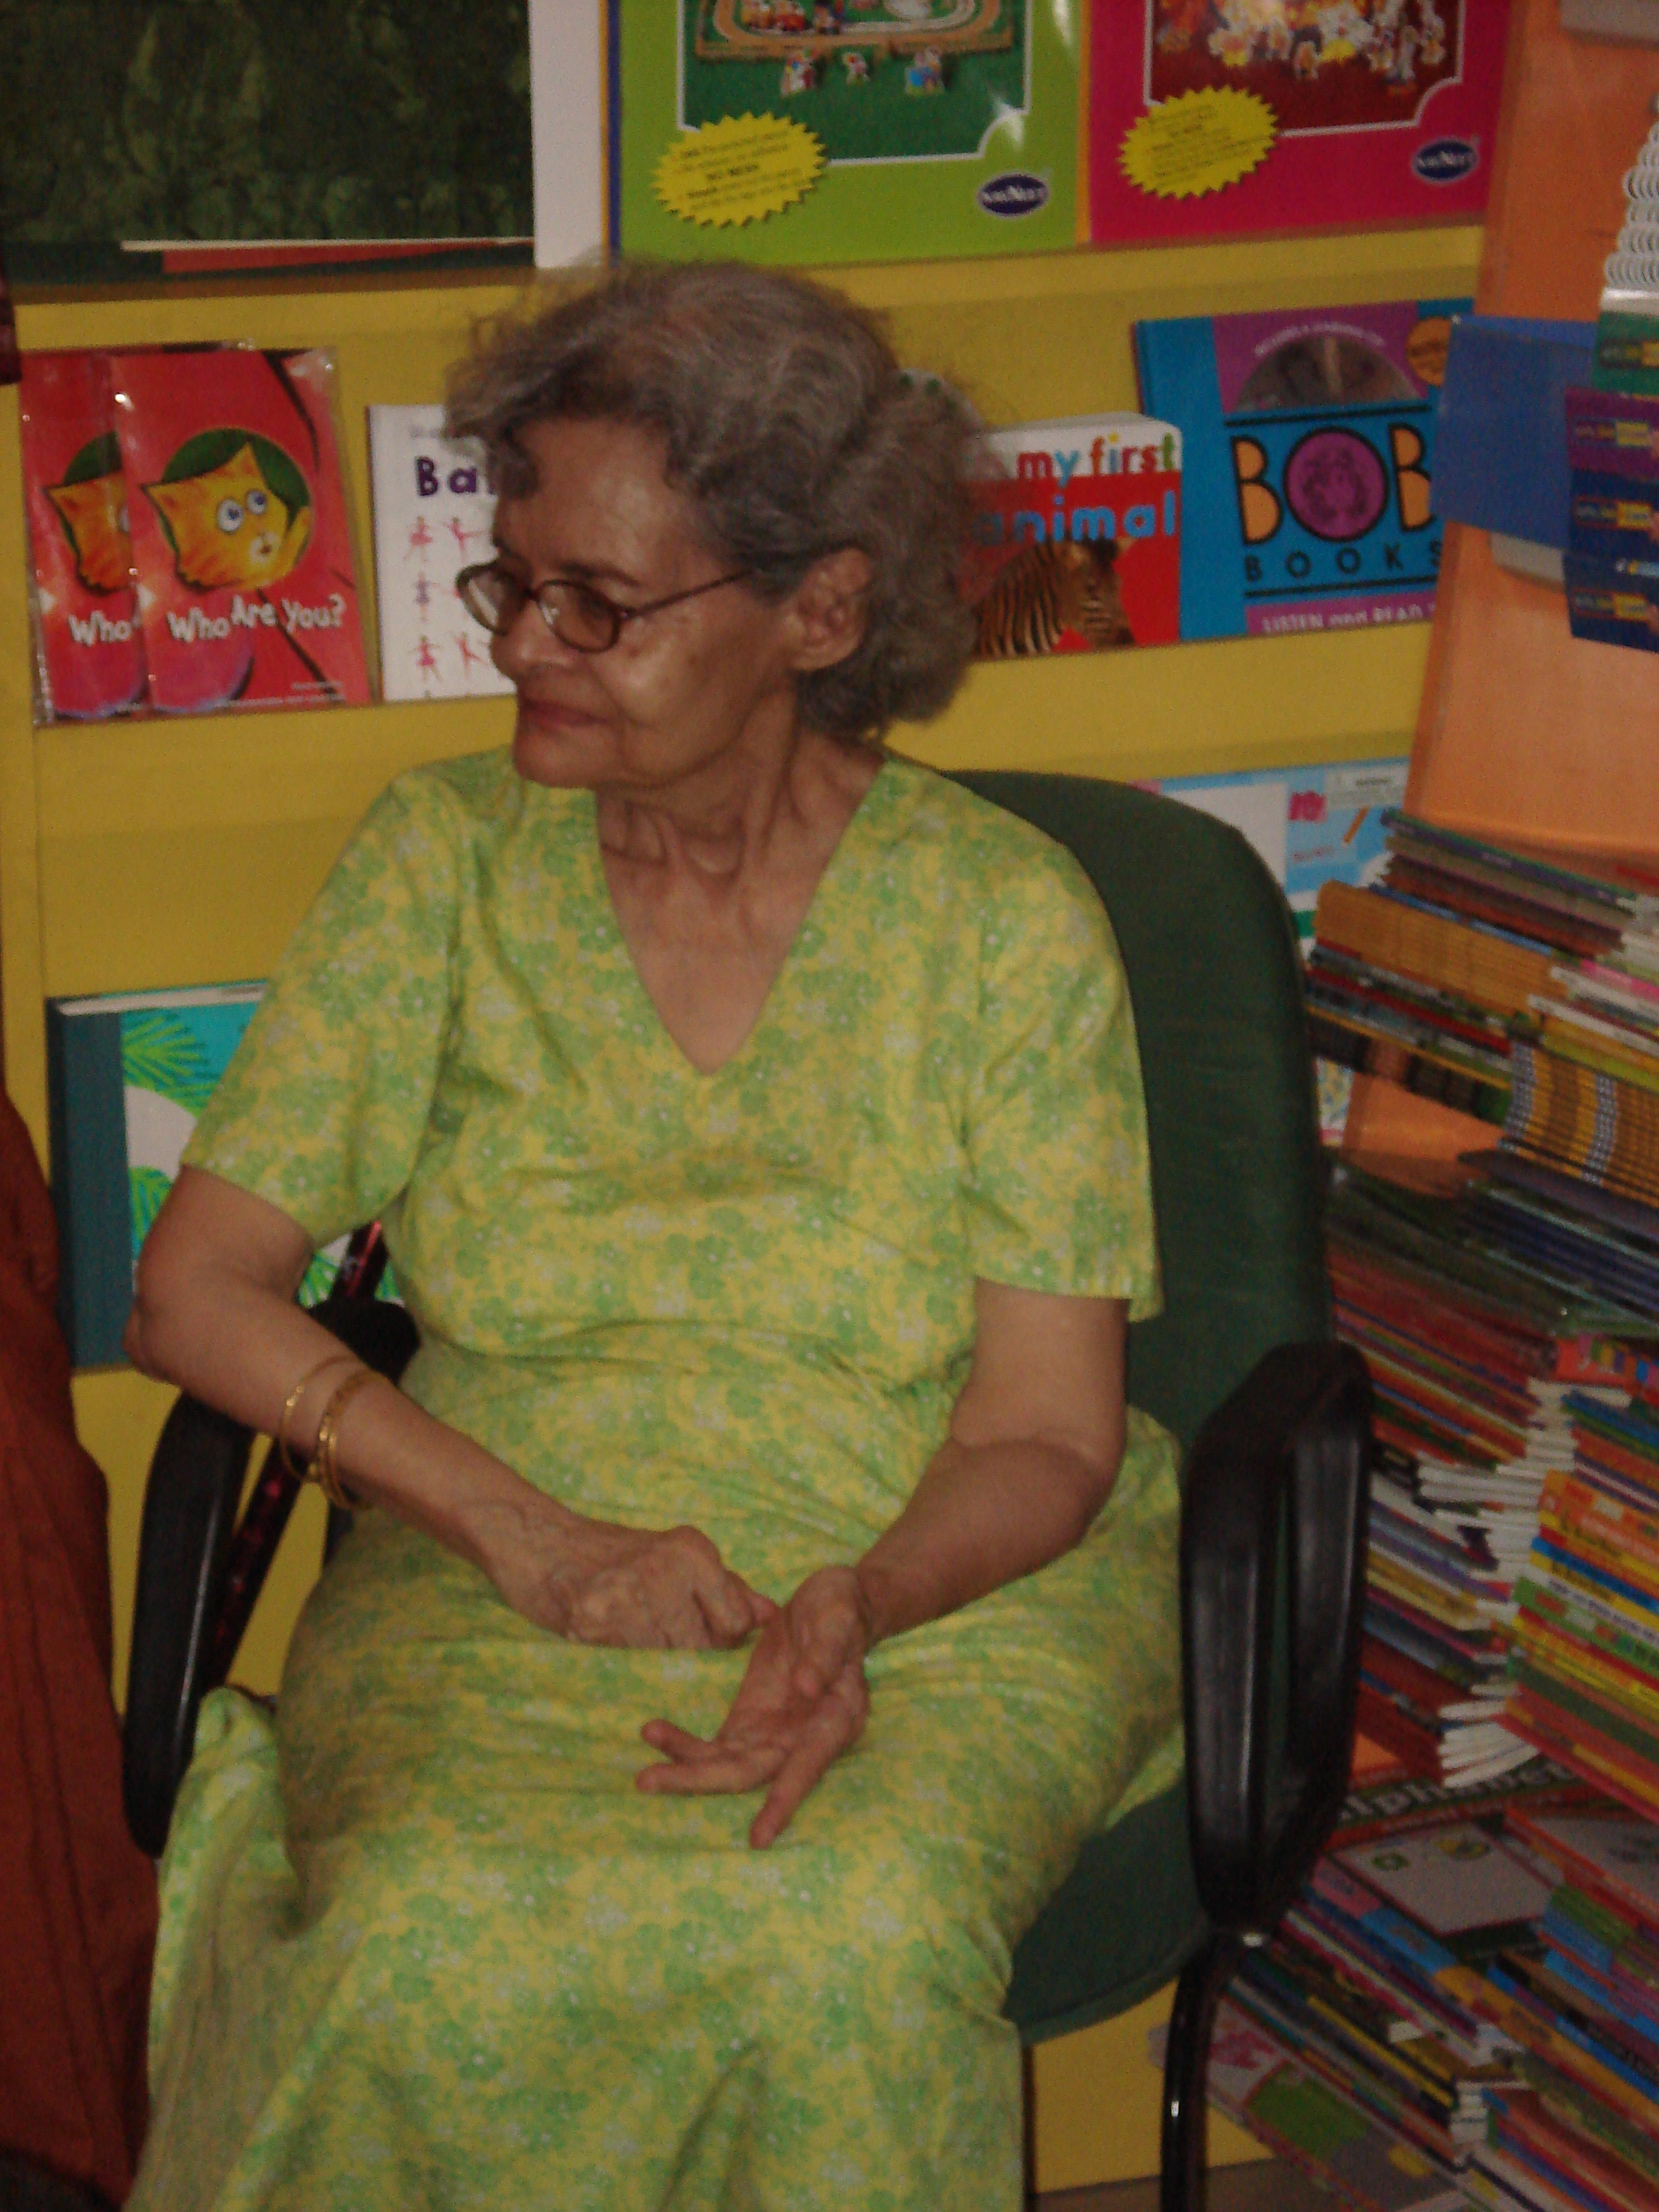 File:Author Hema Pande - Flickr - Pratham Books jpg